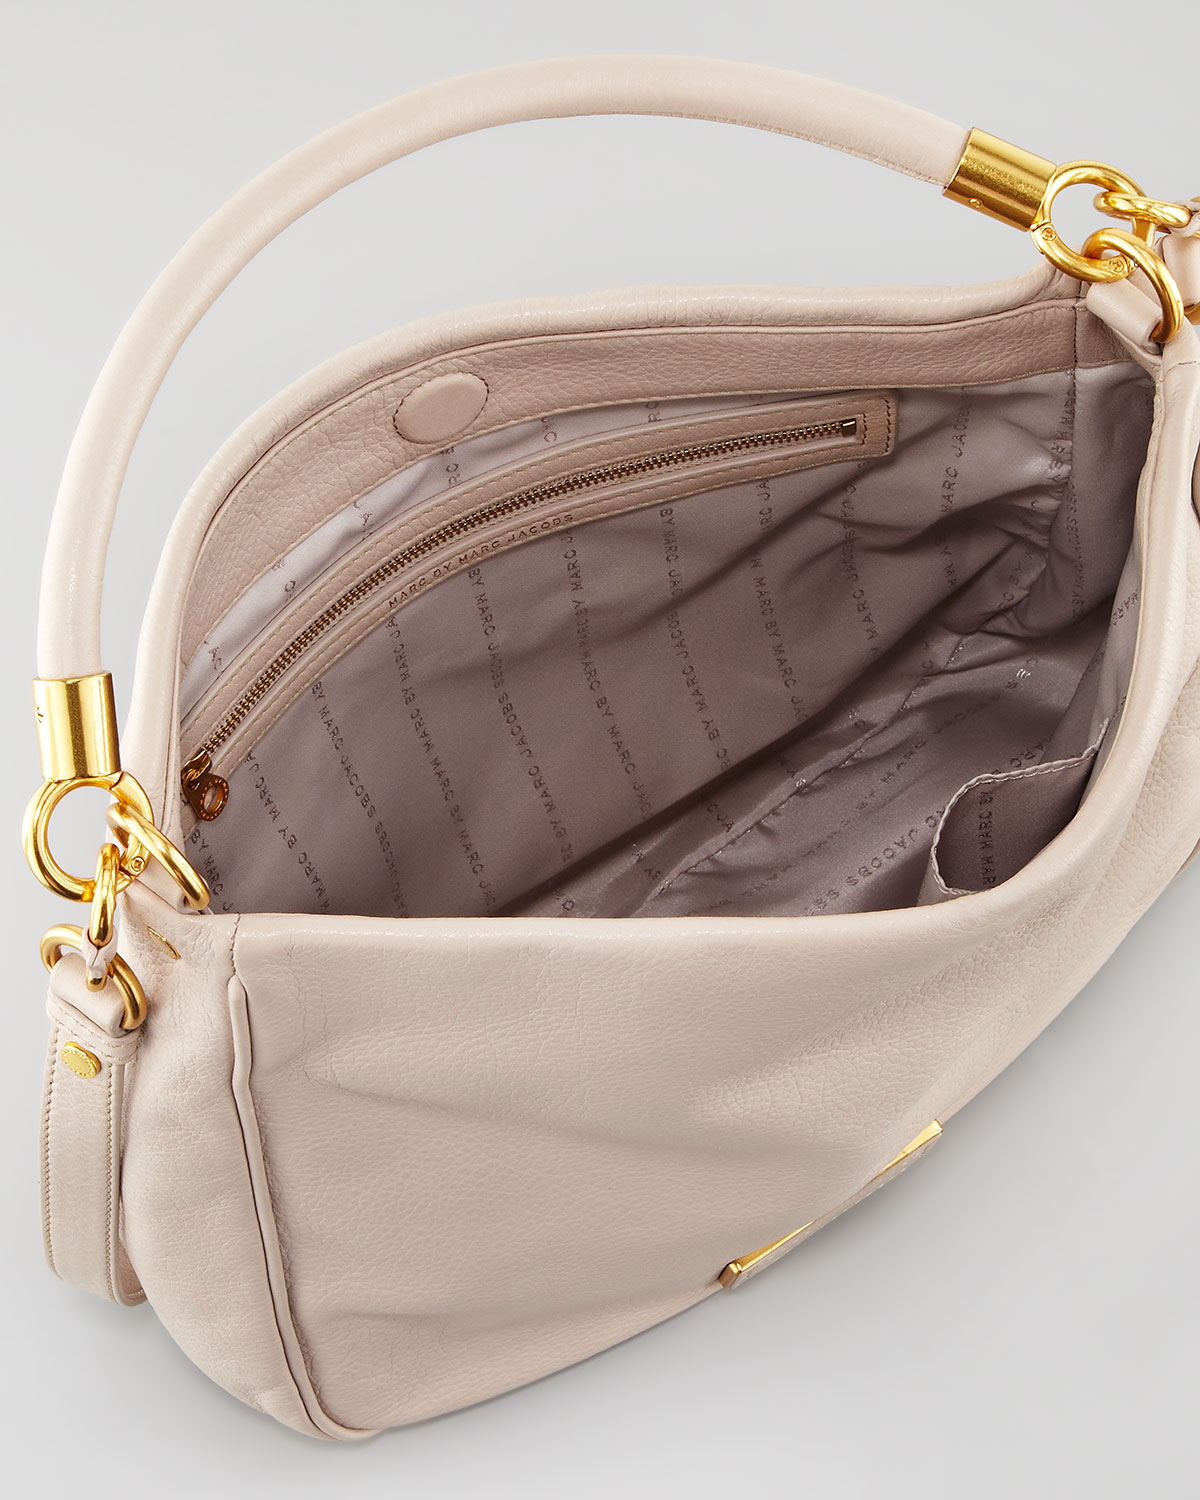 Marc by marc jacobs Too Hot To Handle Hobo Bag Cream in Natural | Lyst